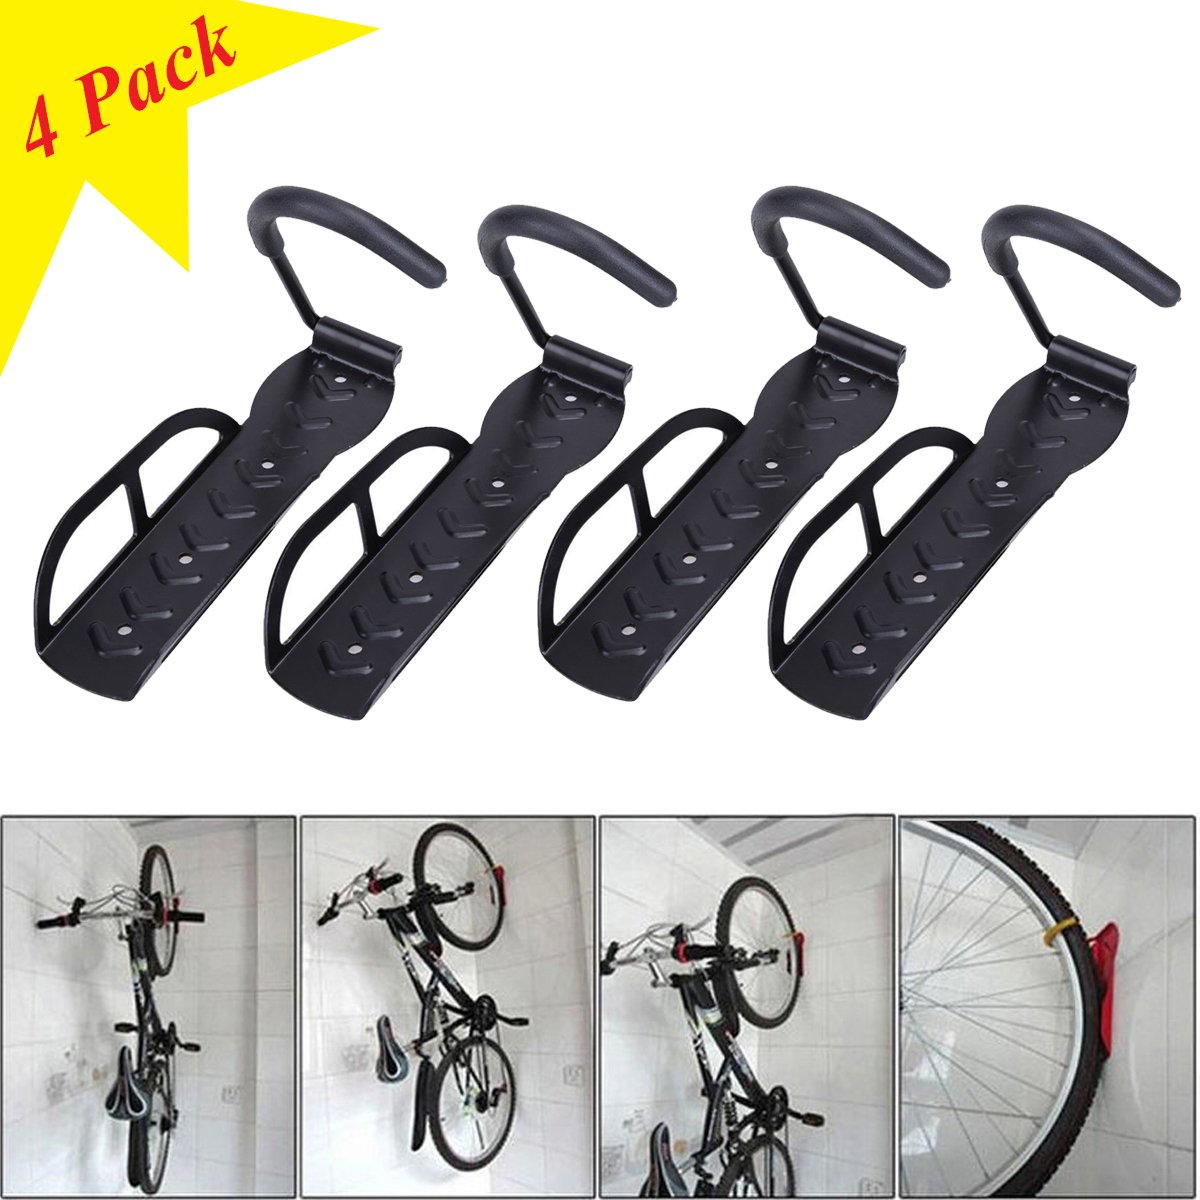 4 Bicycle Wall Mount Hook Hanger Garage Bike Storage Steel Holder Rack Stand Steel by TF-Godung (Image #7)